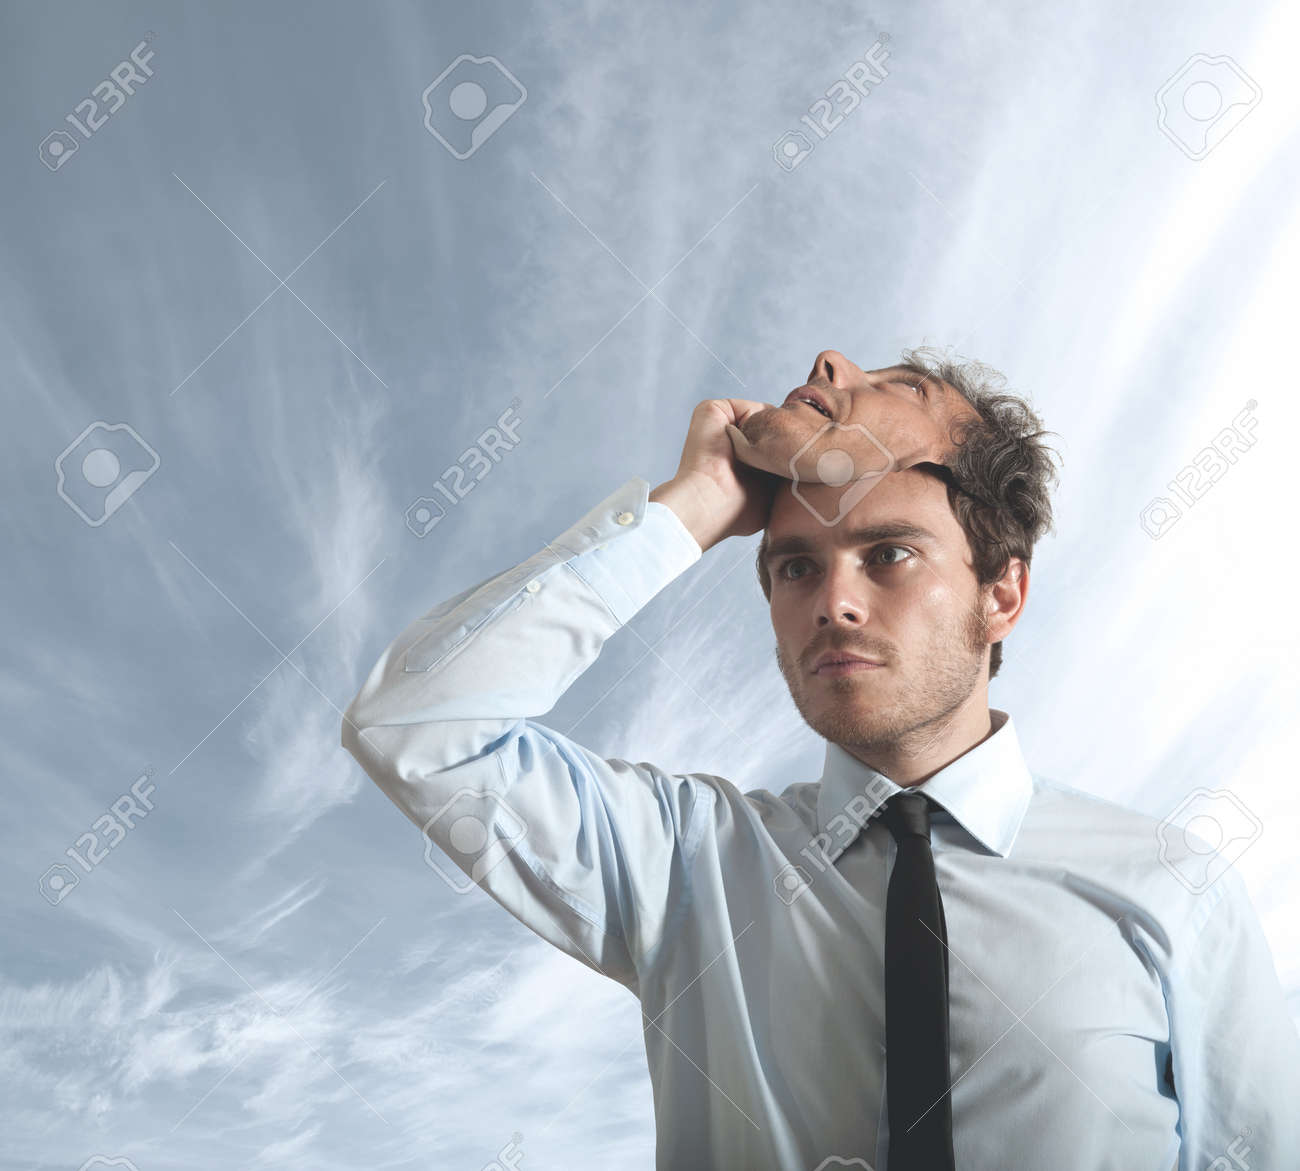 A businessman who hides behind a mask Stock Photo - 14655737